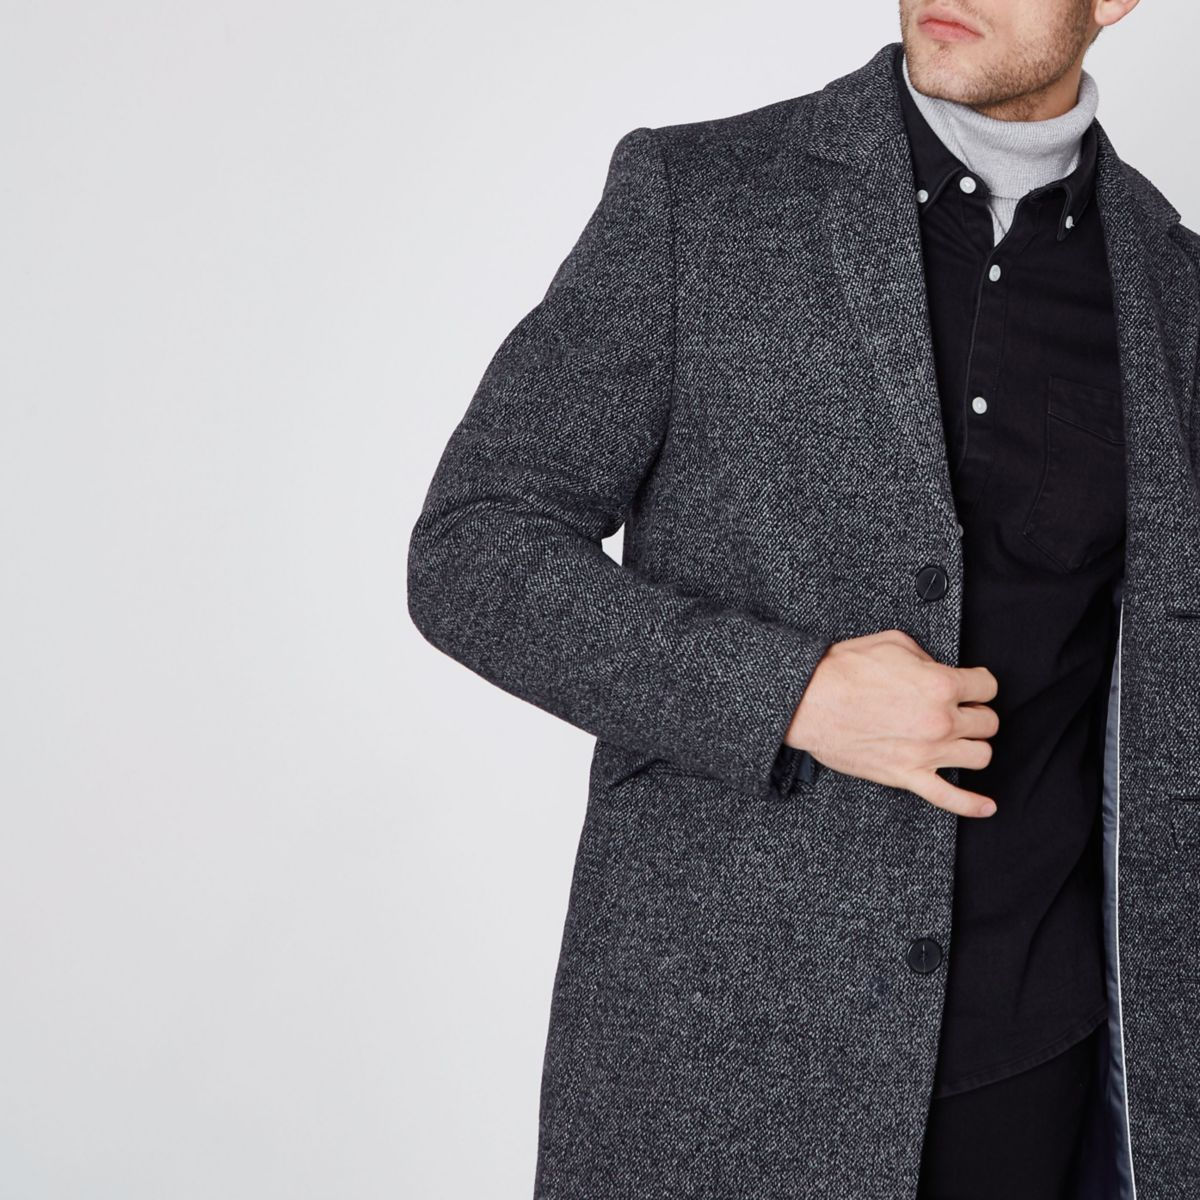 Find great deals on eBay for mens navy blue overcoat. Shop with confidence.